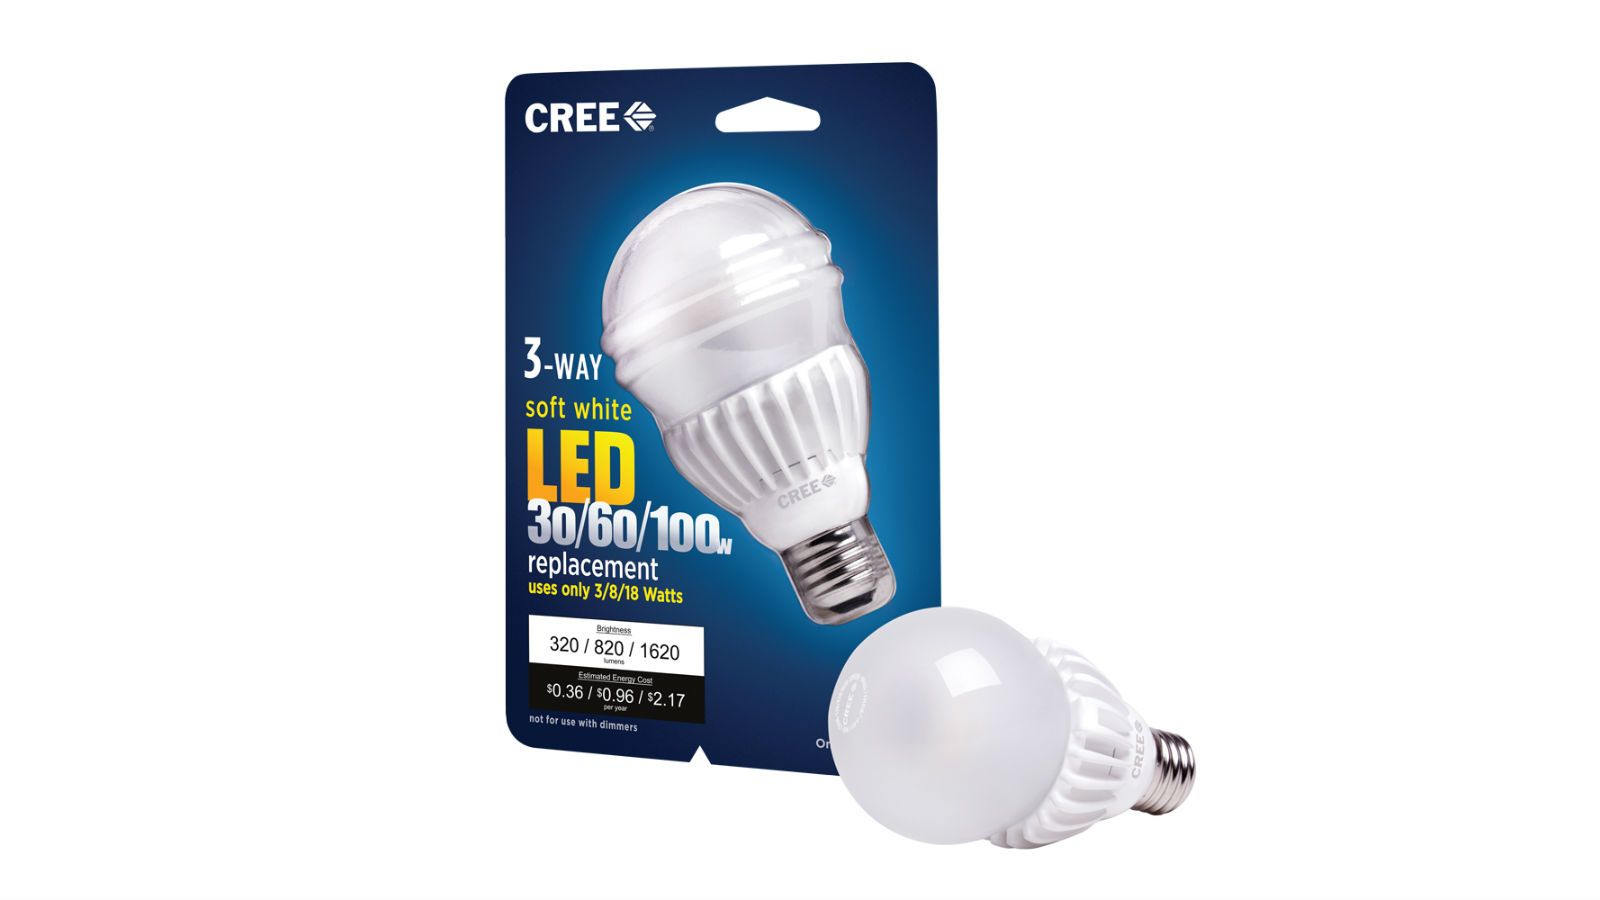 Cree S New 3 Step Led Bulb Brightens Better Than You Re Used To Light Bulb Led Bulb Led Light Bulb